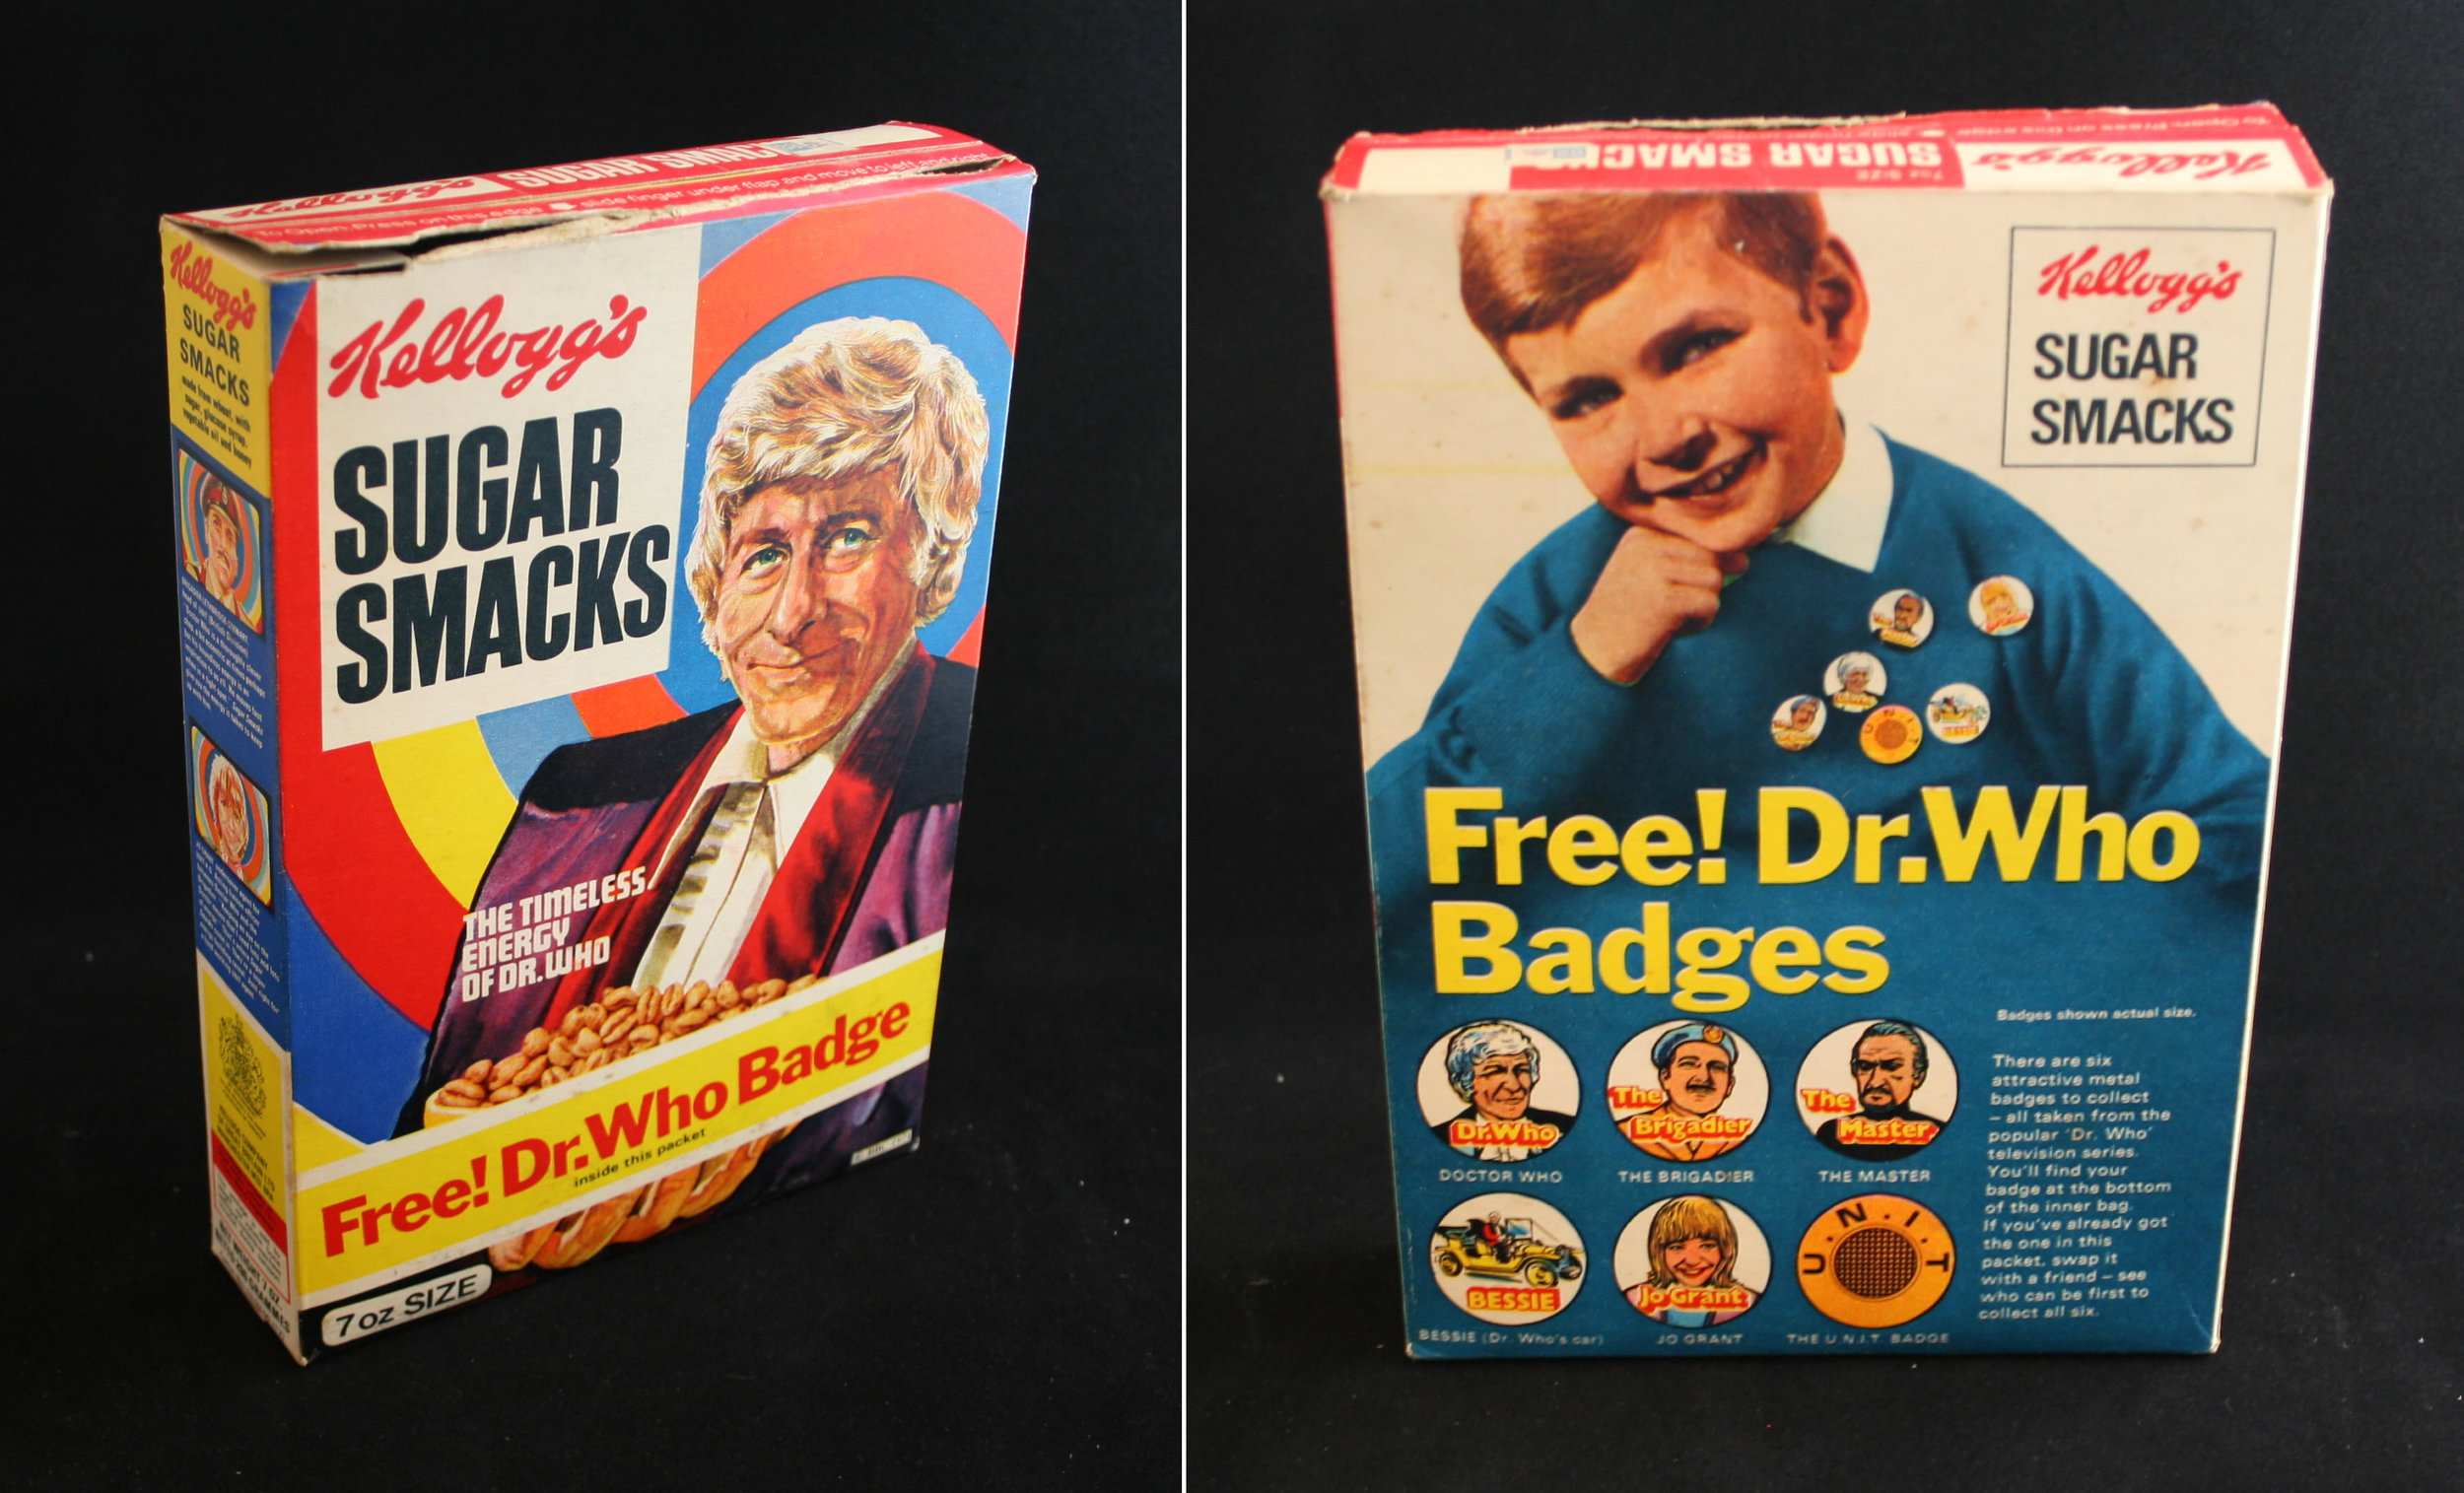 Kellog's Sugar Smacks with Doctor Who badge promotion